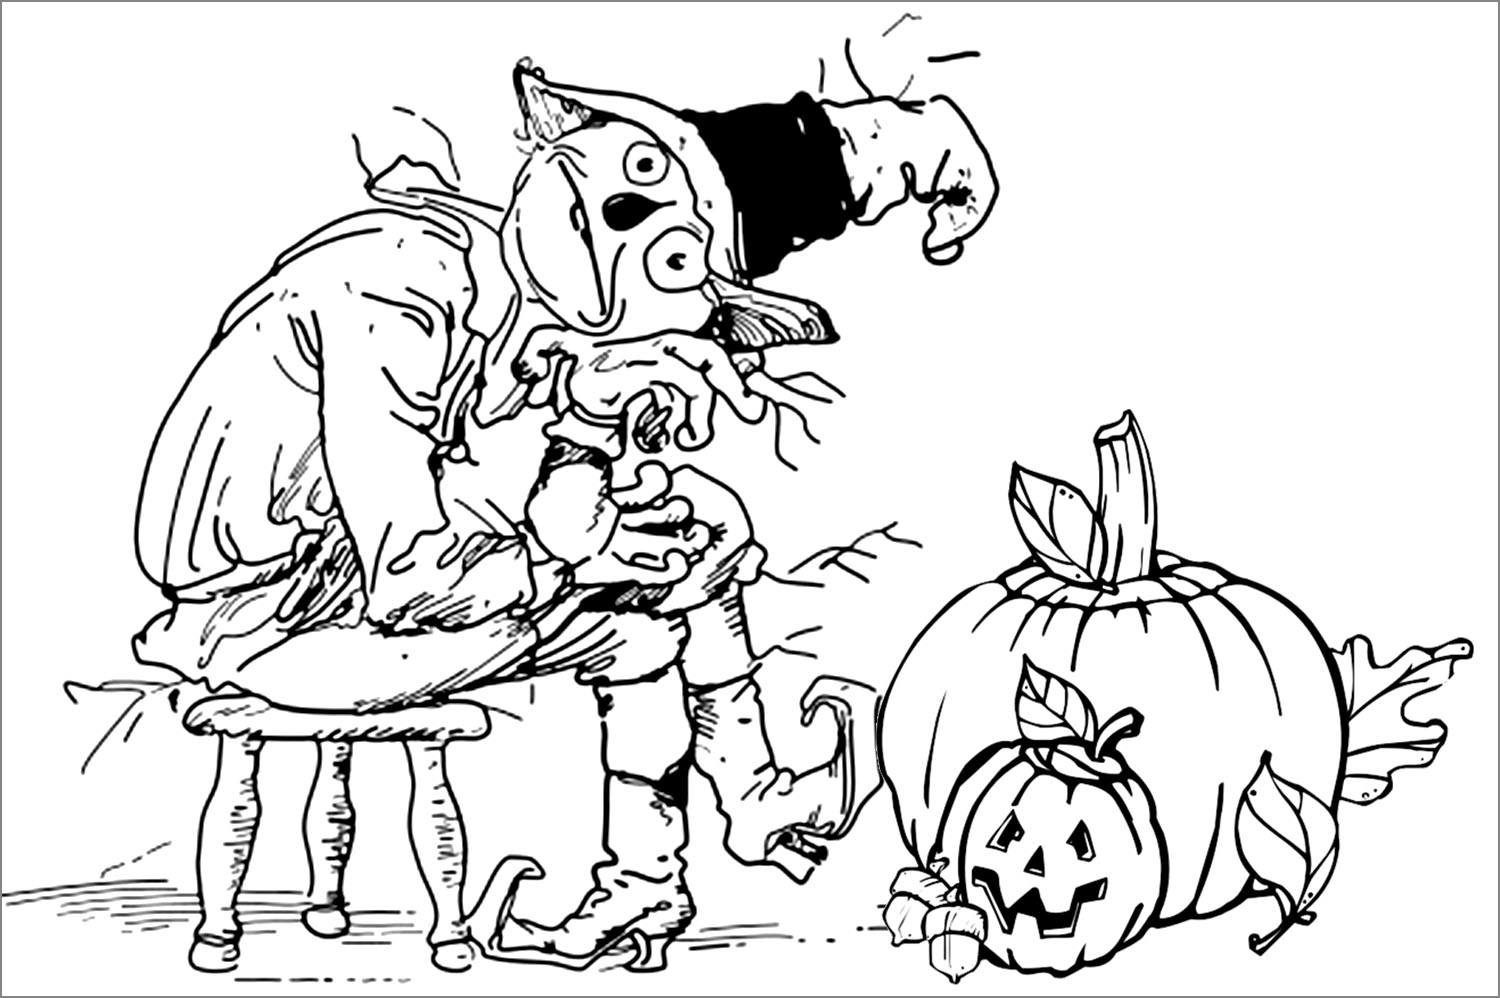 24 Free Halloween Coloring Pages Every Kid Will Love | OhLaDe | 998x1500